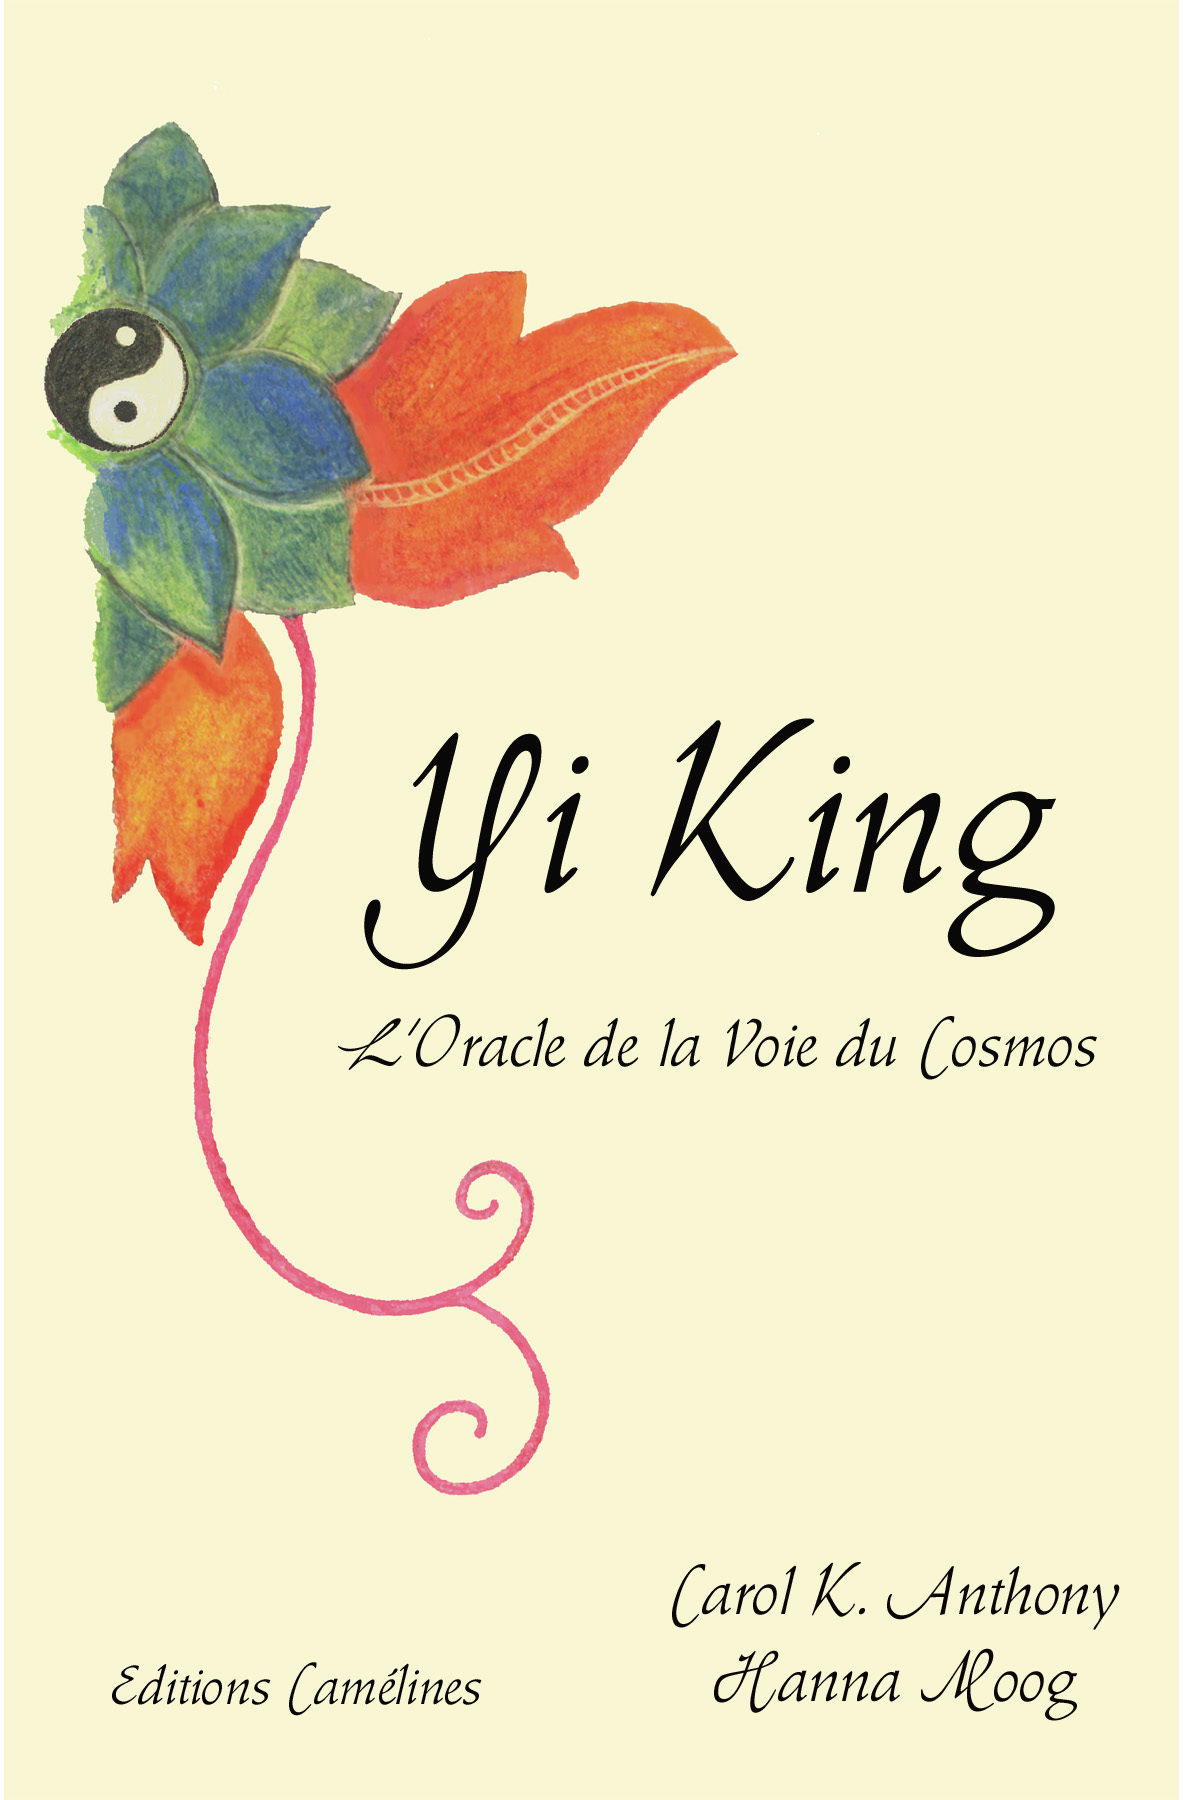 YI KING, L'ORACLE DE LA VOIE DU COSMOS